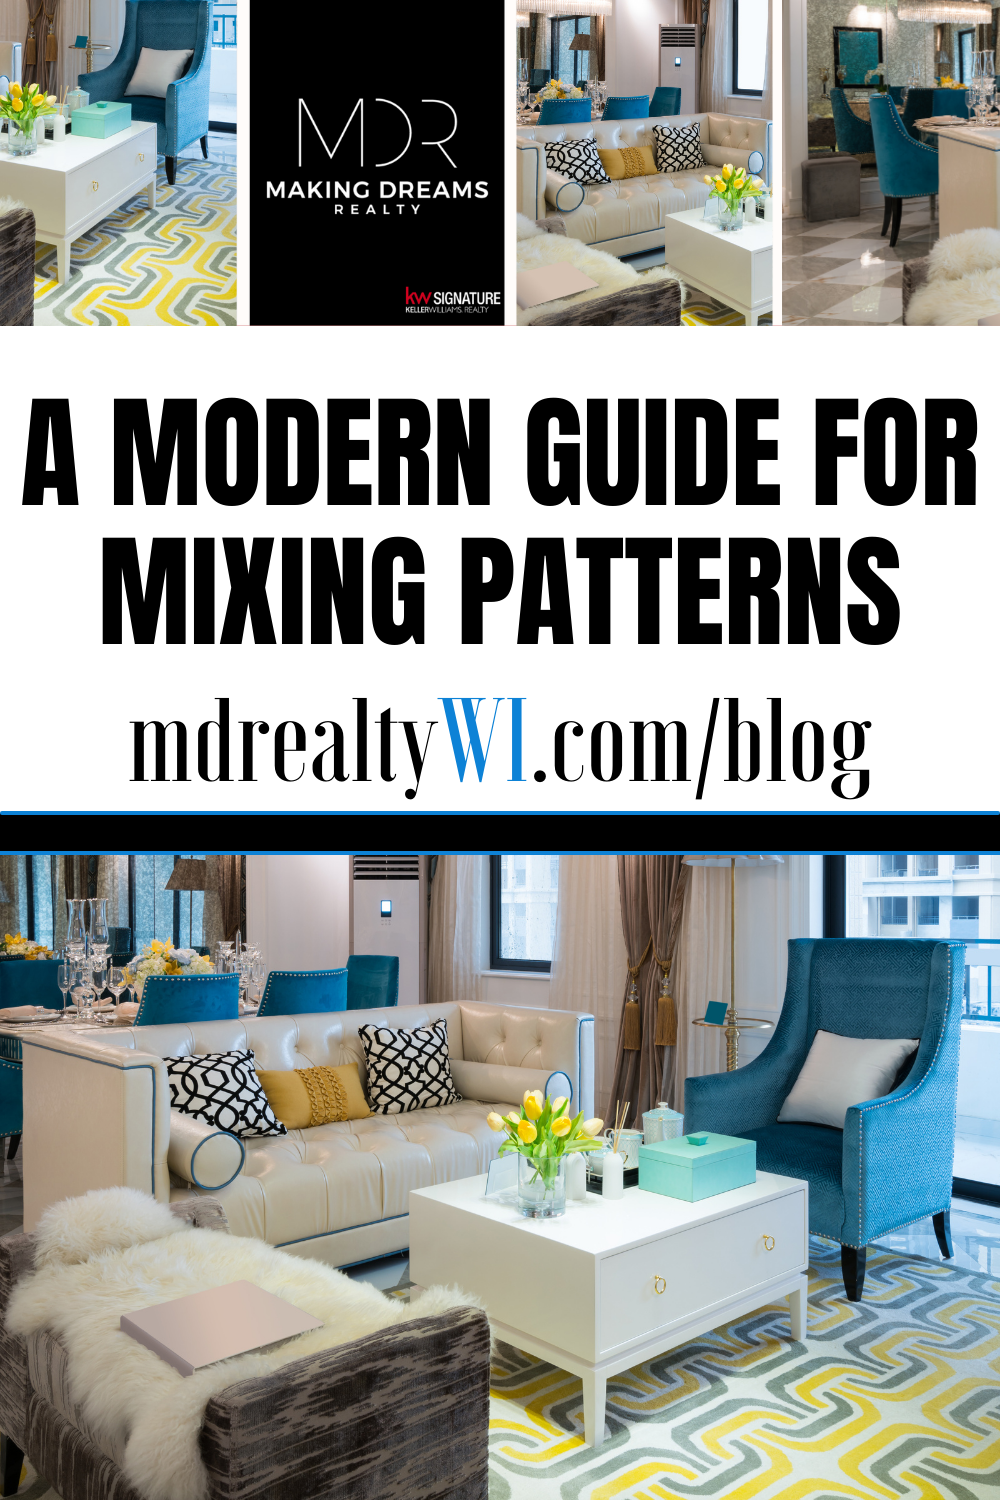 MDR Blog: A Modern Guide for Mixing Patterns